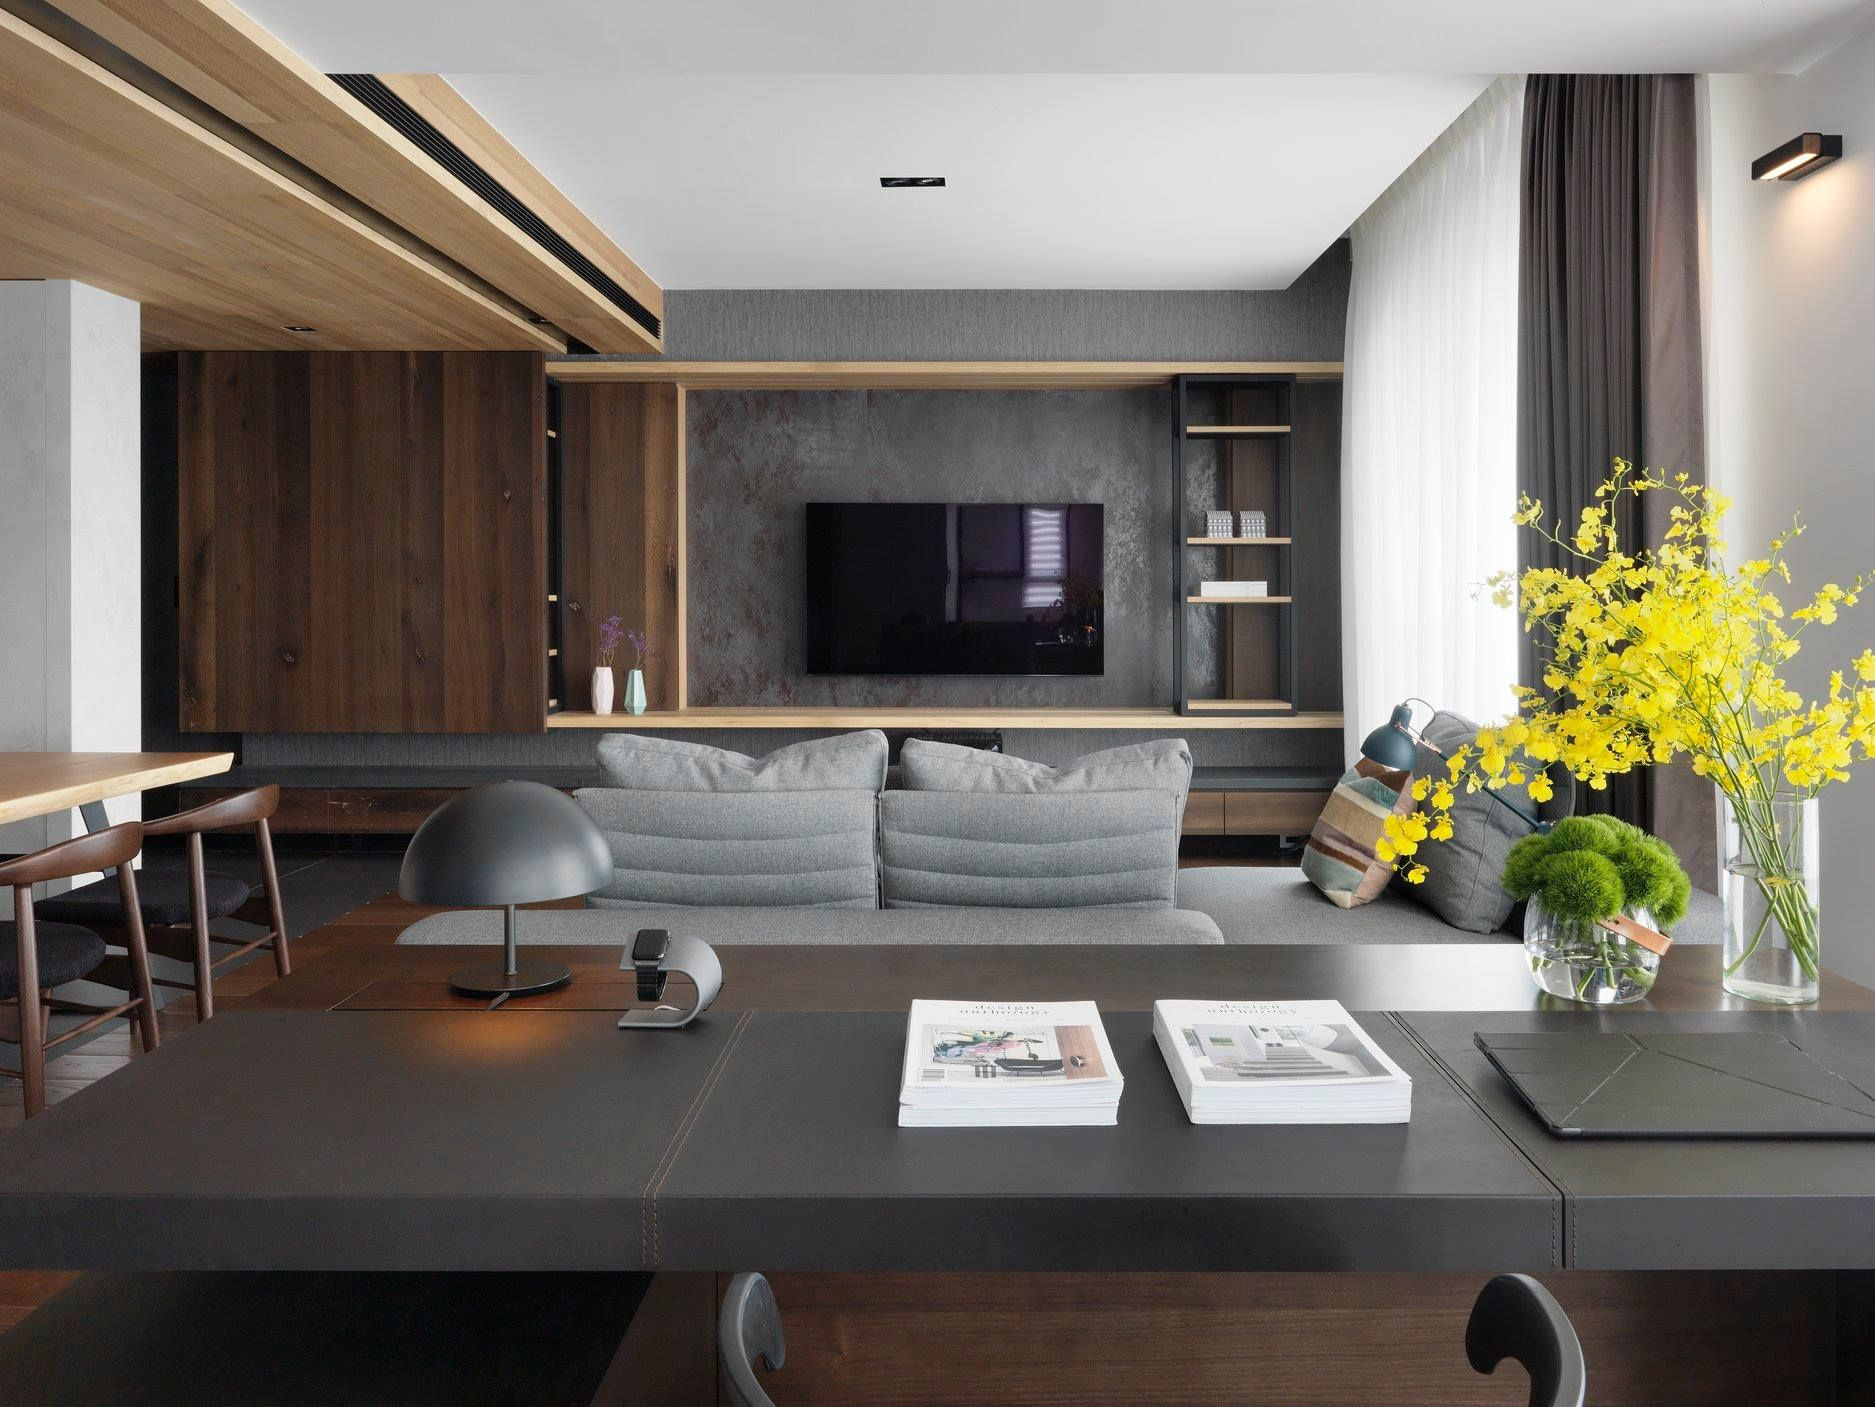 Pin by shu fen fang on homes in 2018 pinterest living room